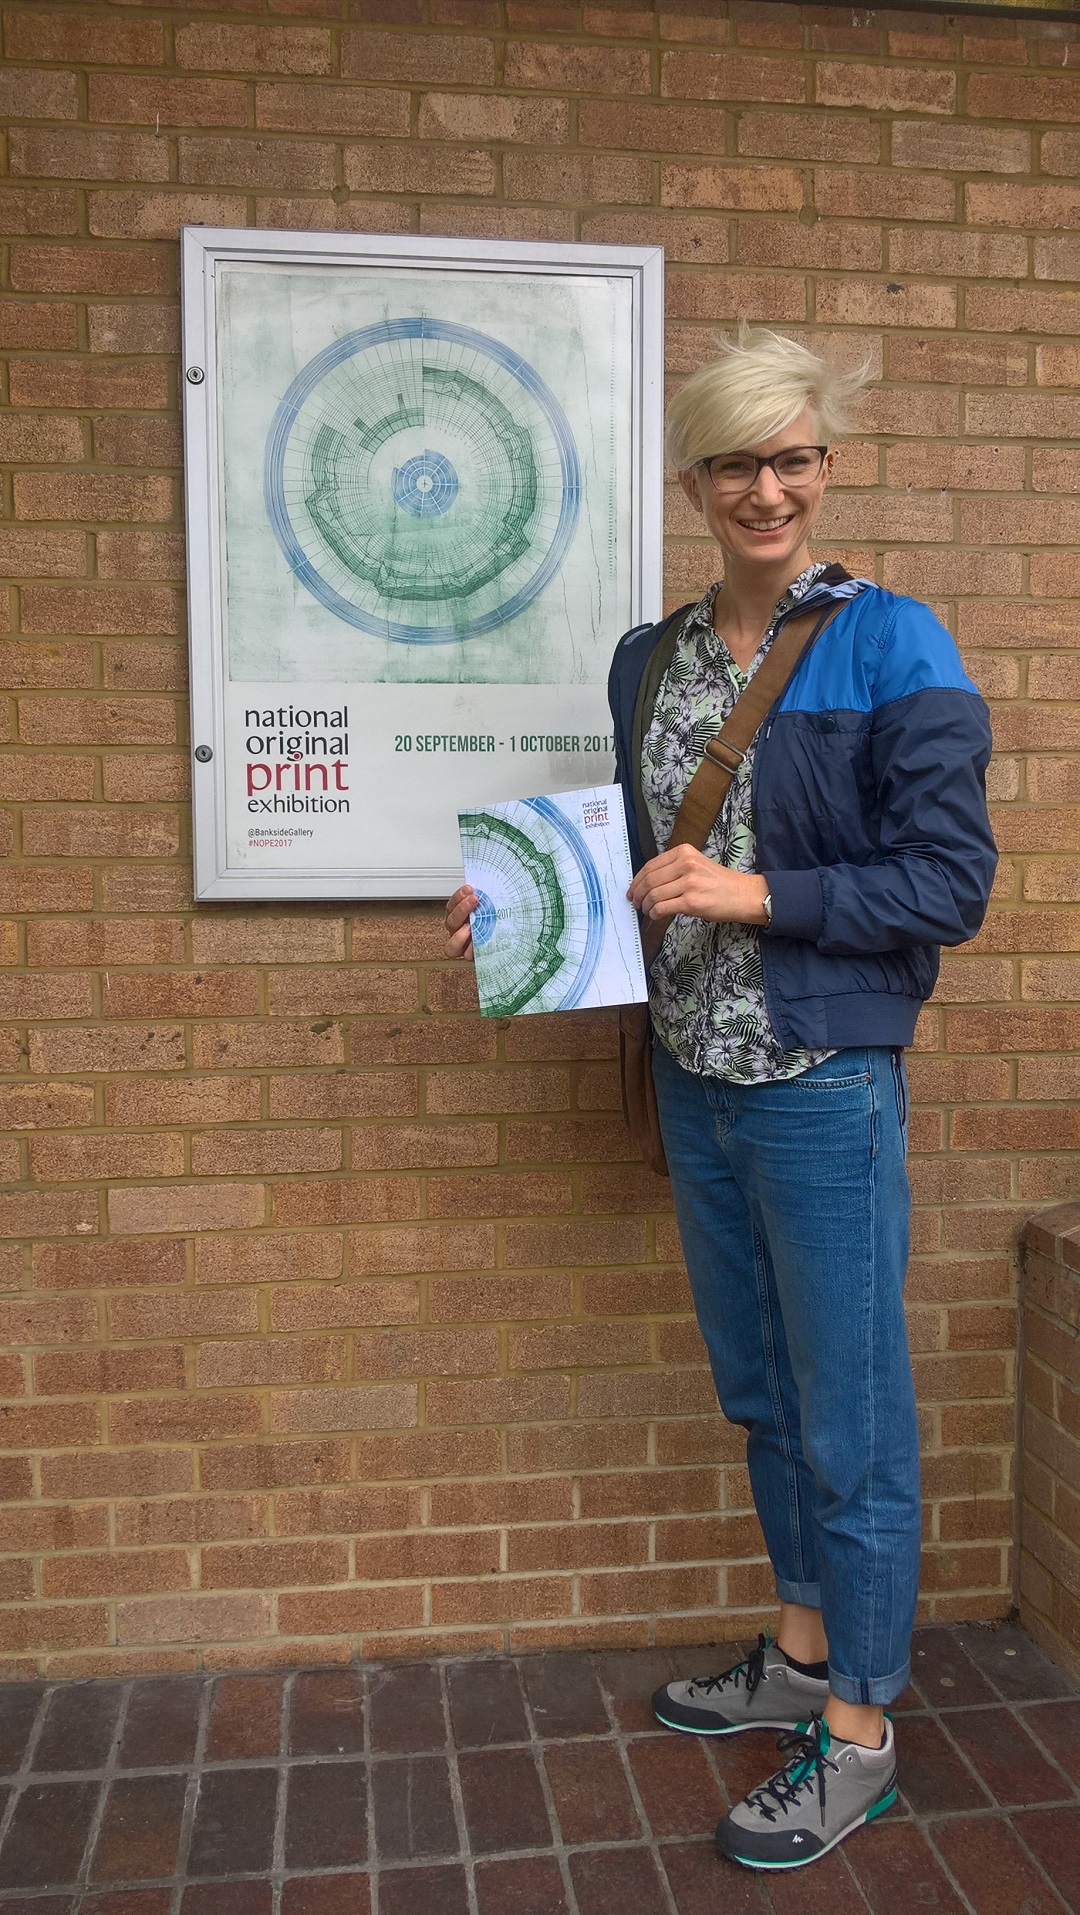 National Original Print Exhibition Bankside Gallery, London September 2017 Liz K. Miller with the exhibition catalogue and poster which featured an image of the artist's work 'Circular Score #5'